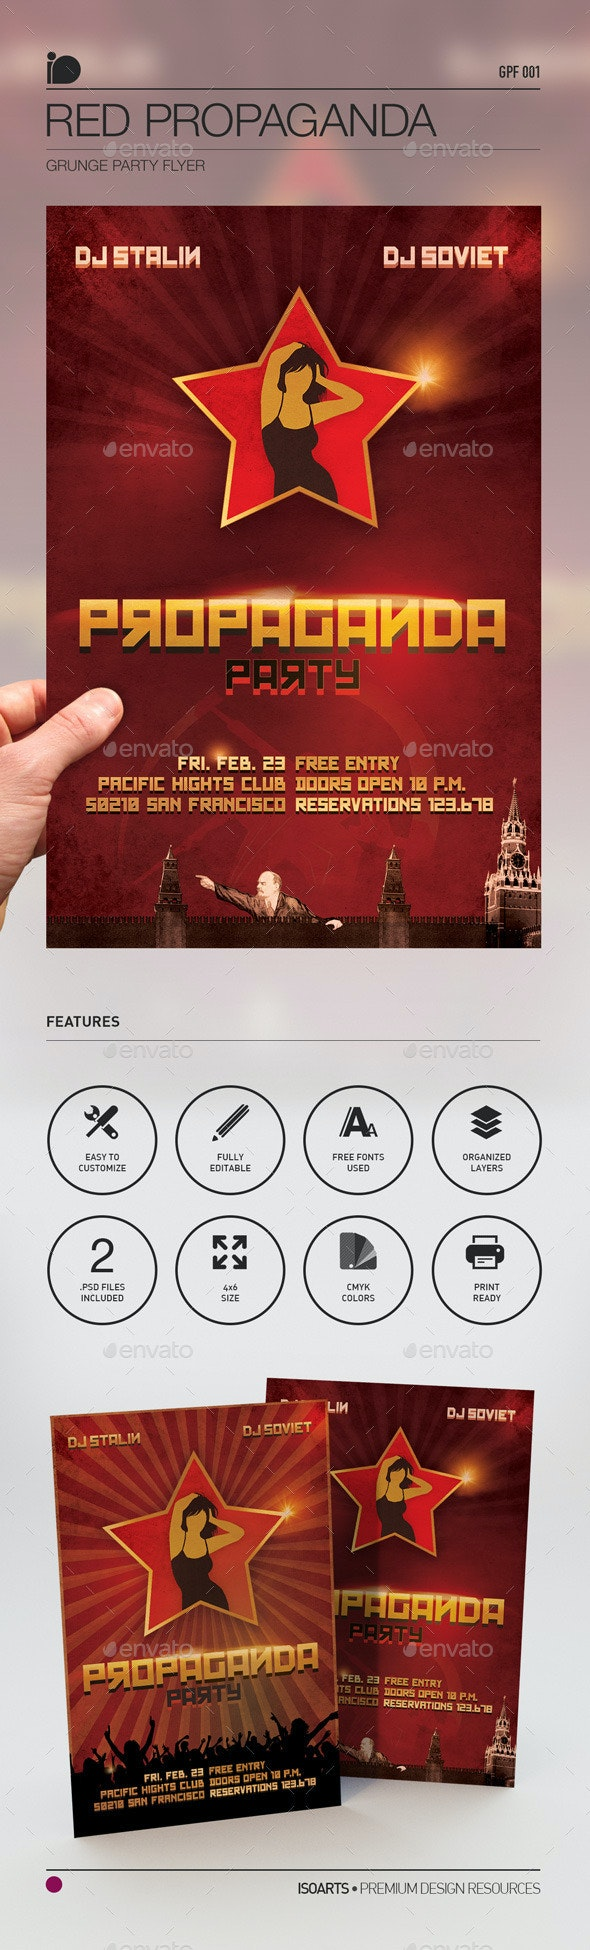 Grunge Party Flyer • Red Propaganda - Clubs & Parties Events